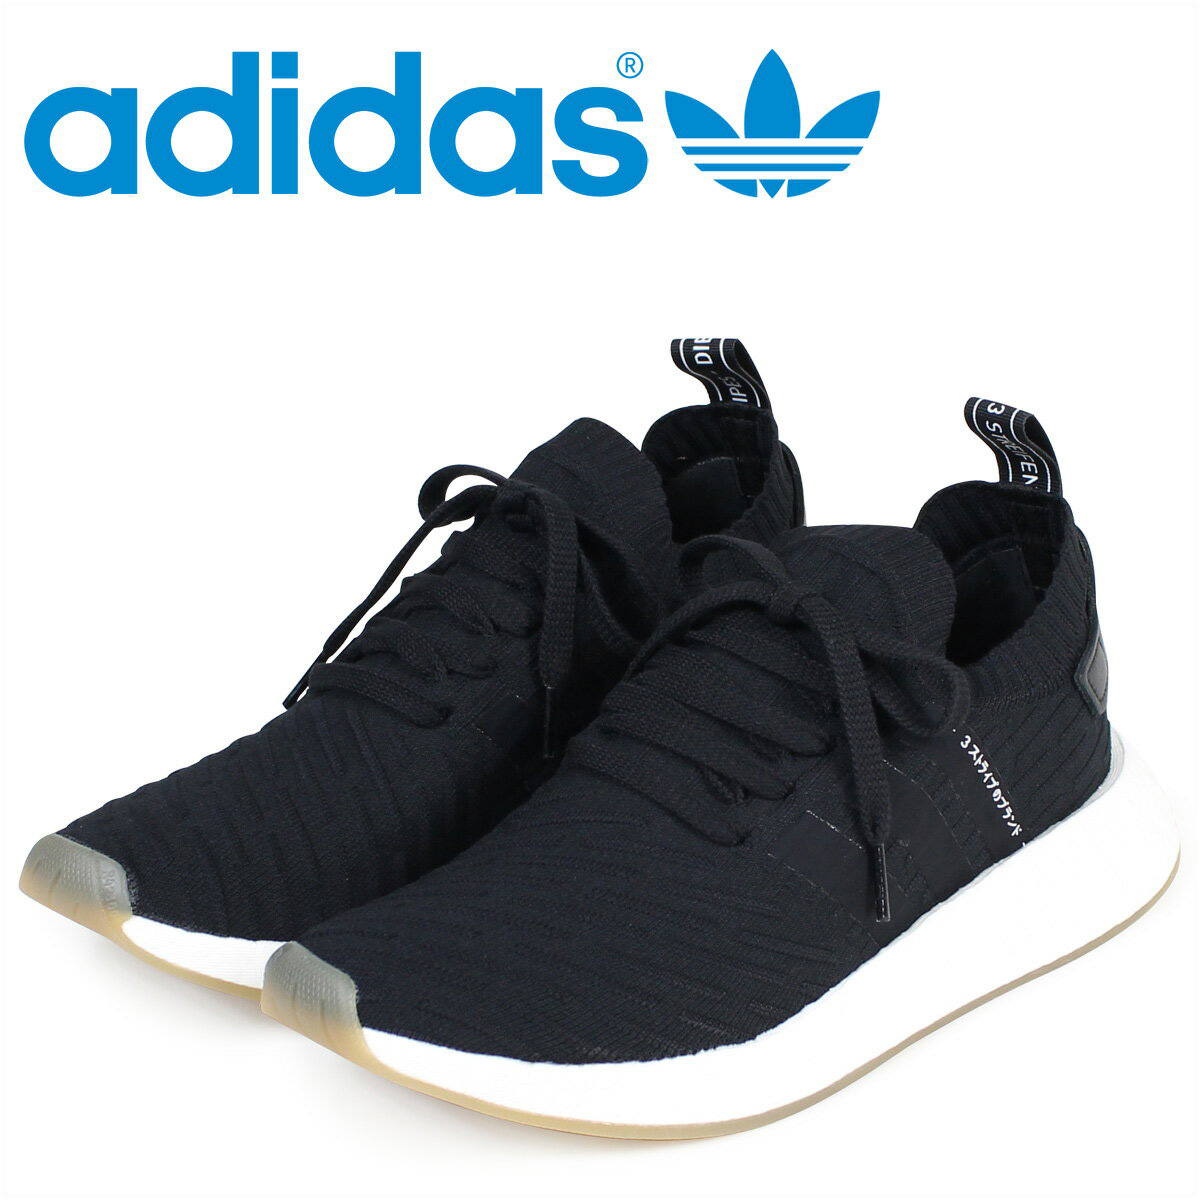 save off c297f 78c73 adidas NMD R1 PK Adidas Originals sneakers nomad men BY9696 shoes black  black